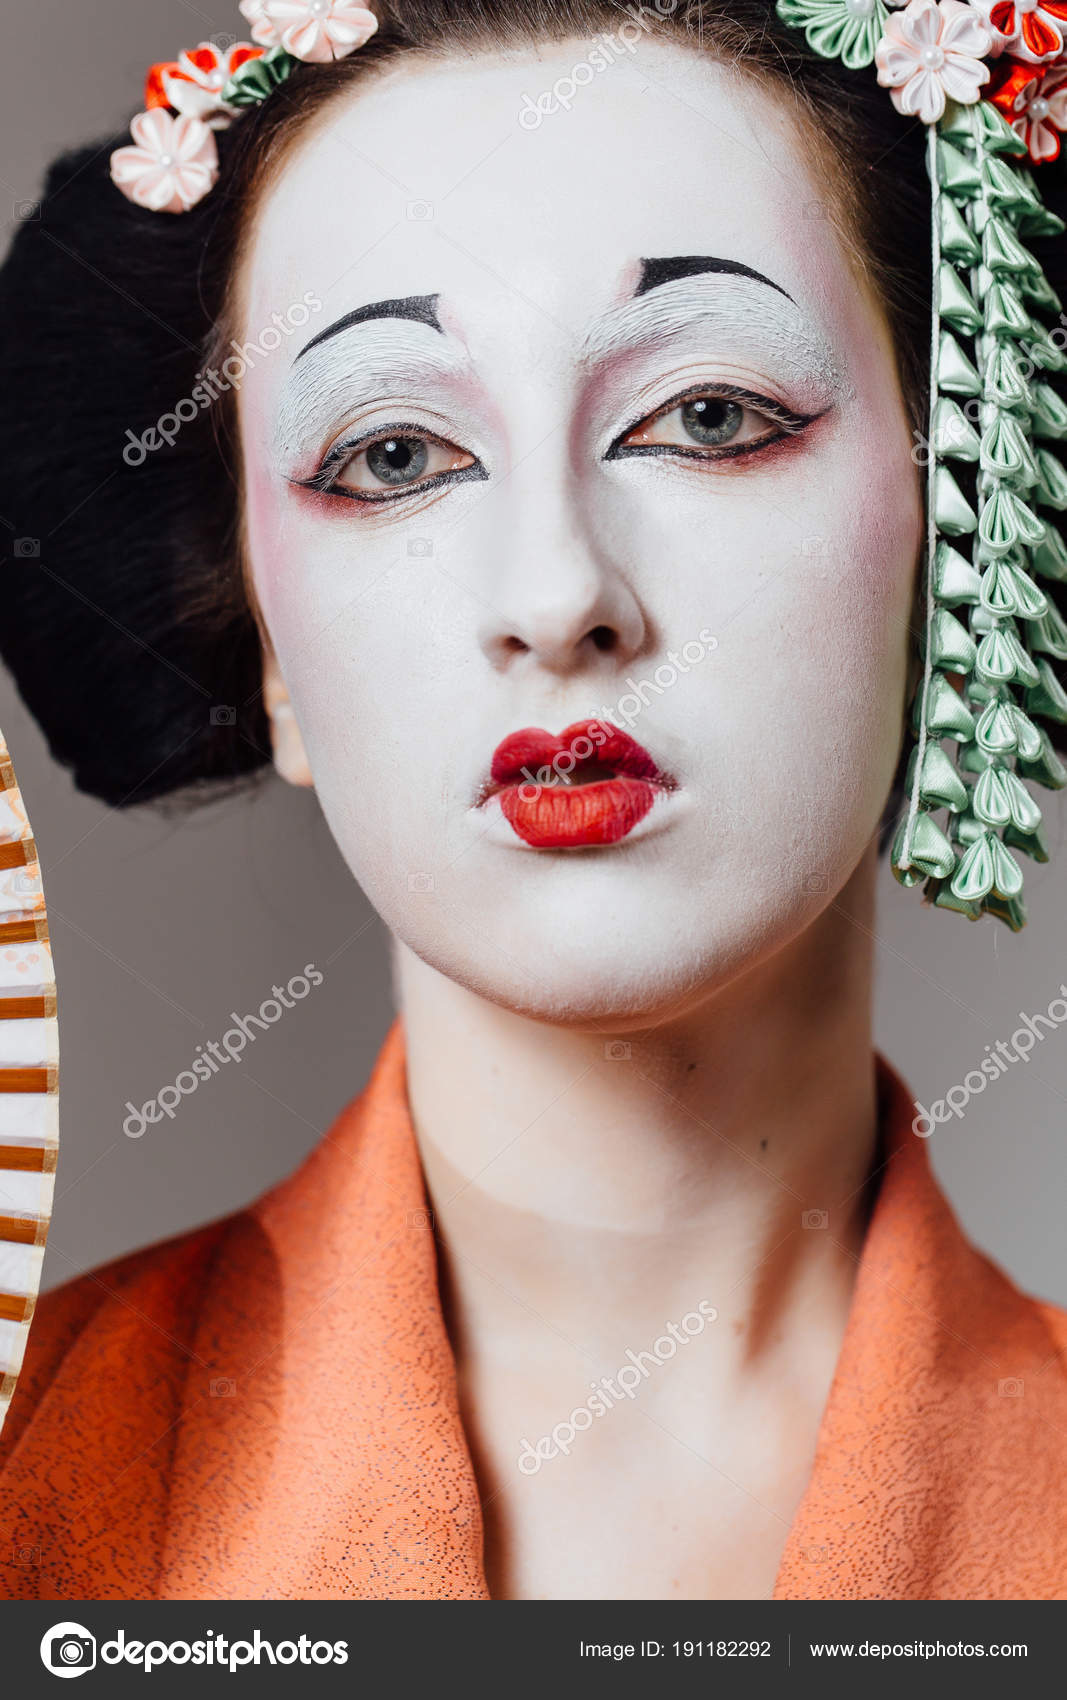 Woman in geisha makeup and a traditional Japanese kimono. Studio, Indoor. — Stock